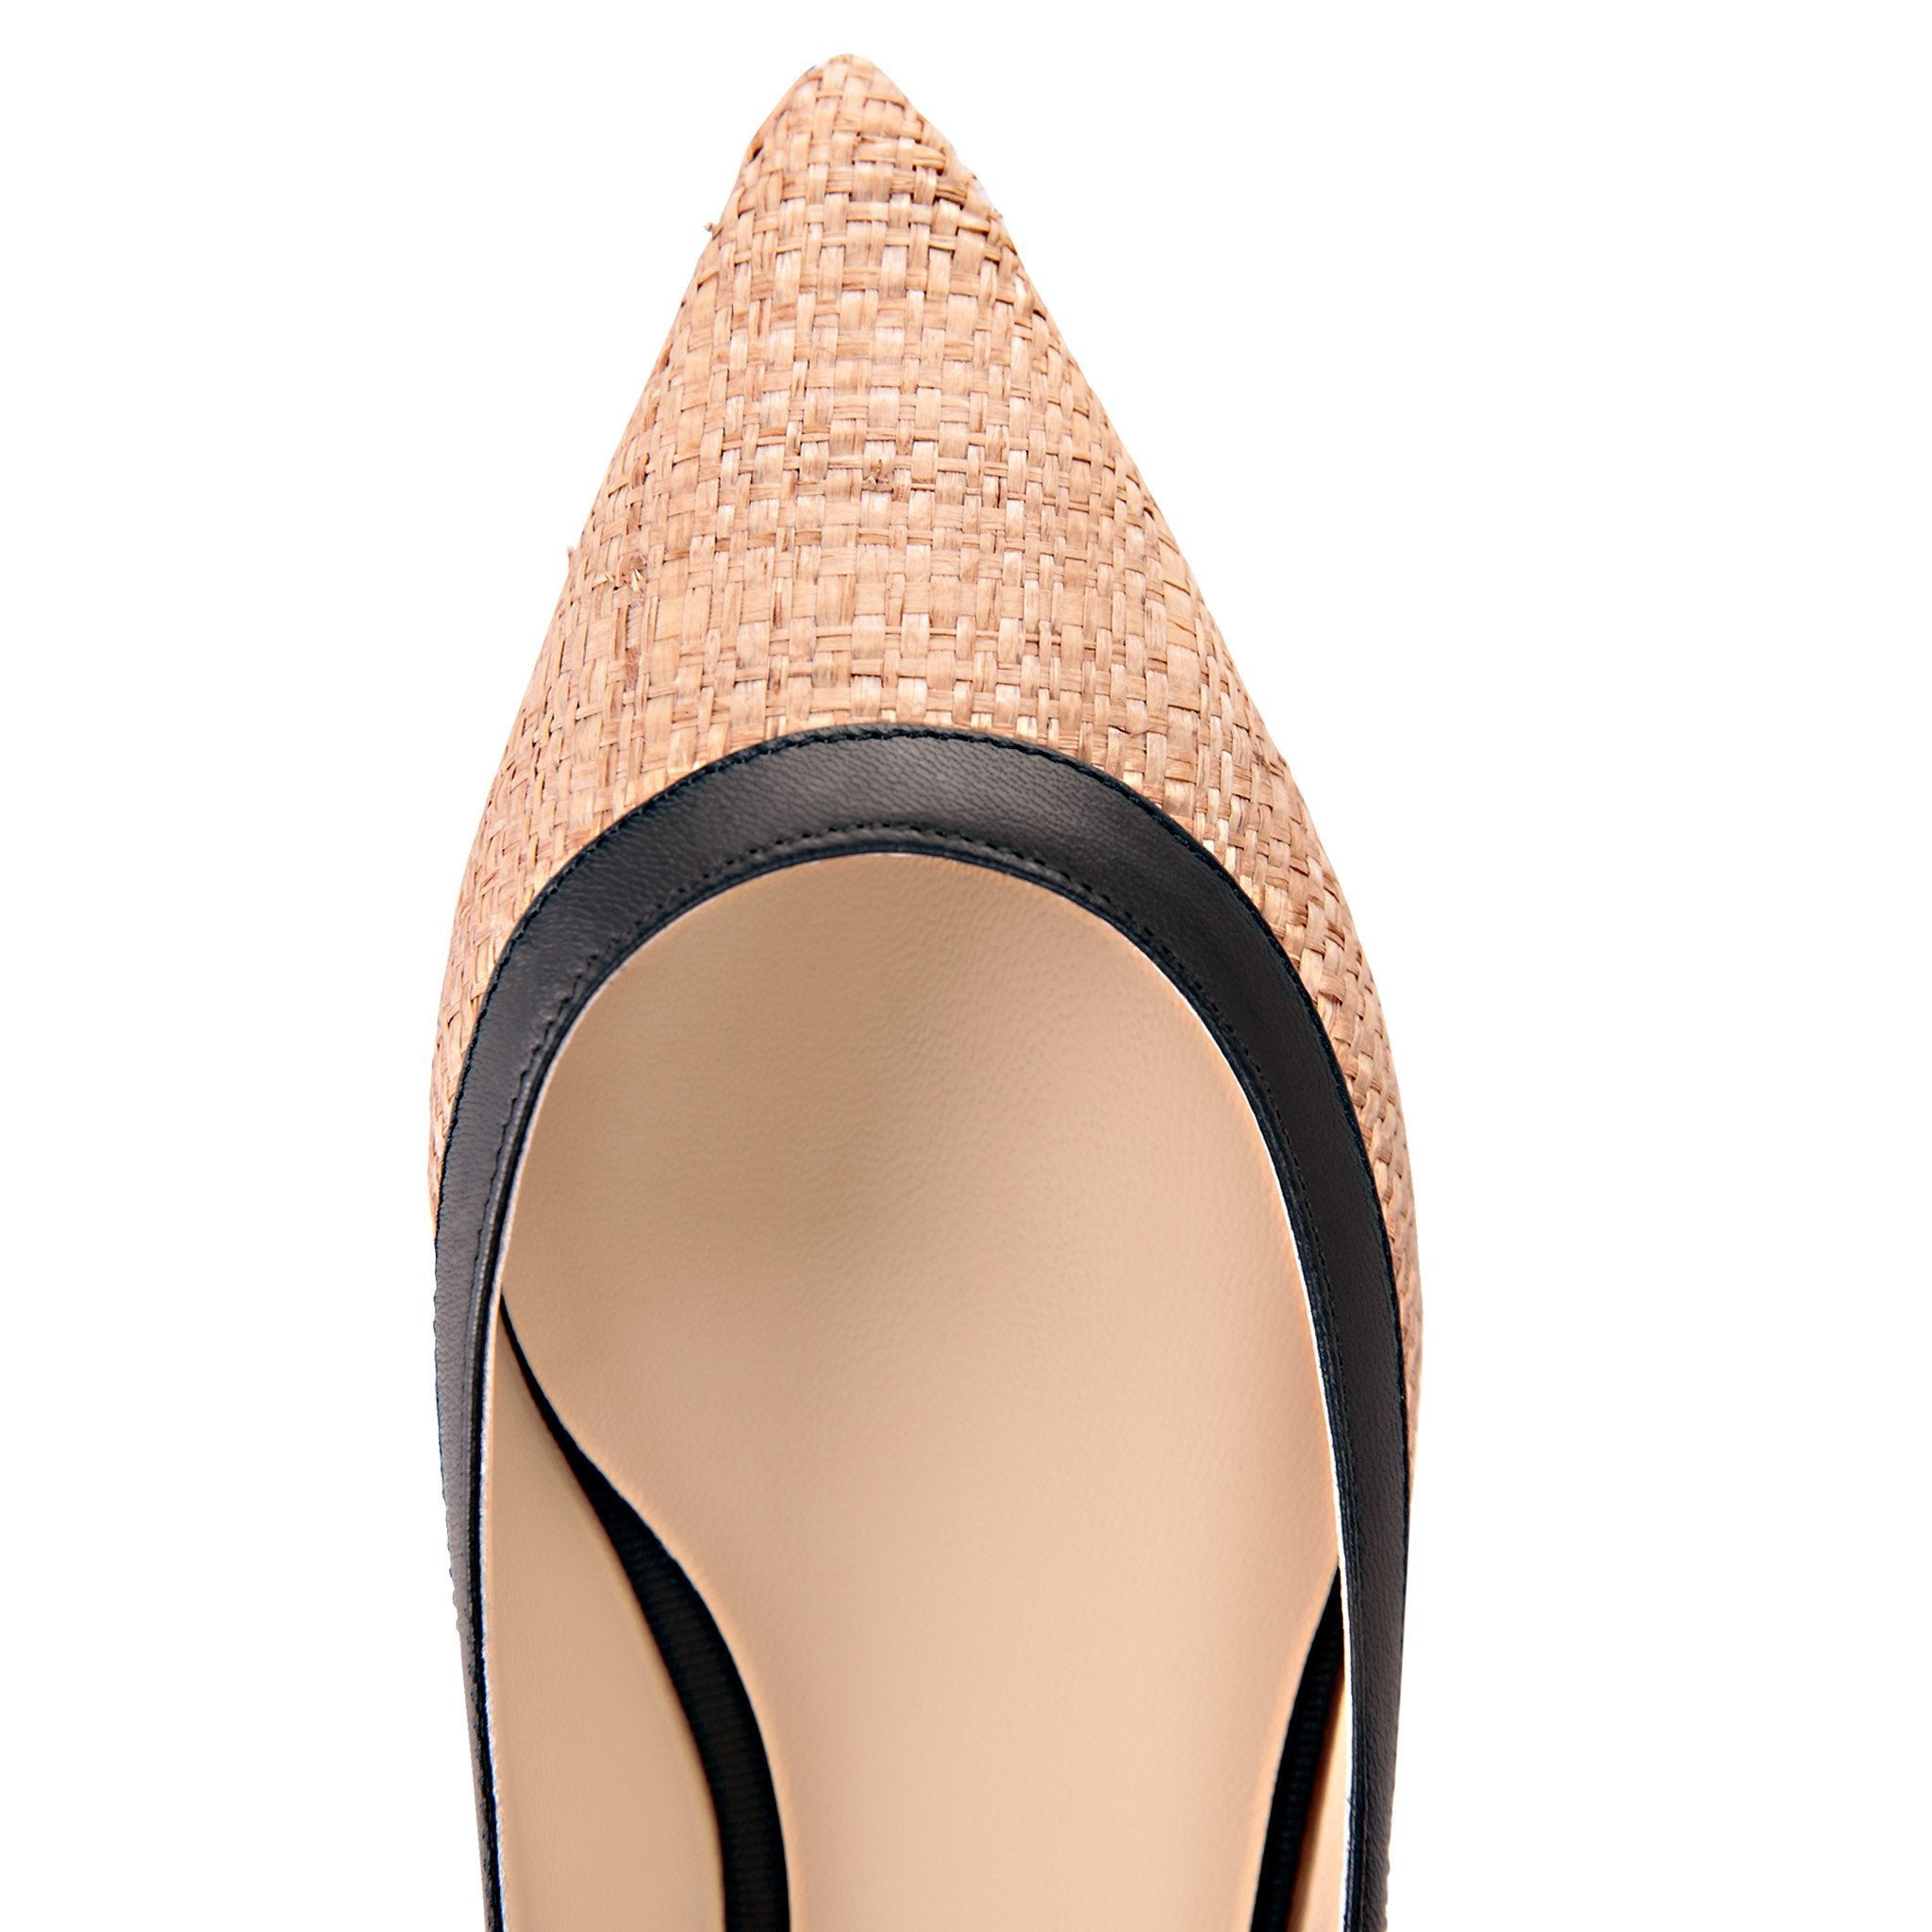 MILANO - Raffia Natural + Nappa Nero, VIAJIYU - Women's Hand Made Sustainable Luxury Shoes. Made in Italy. Made to Order.